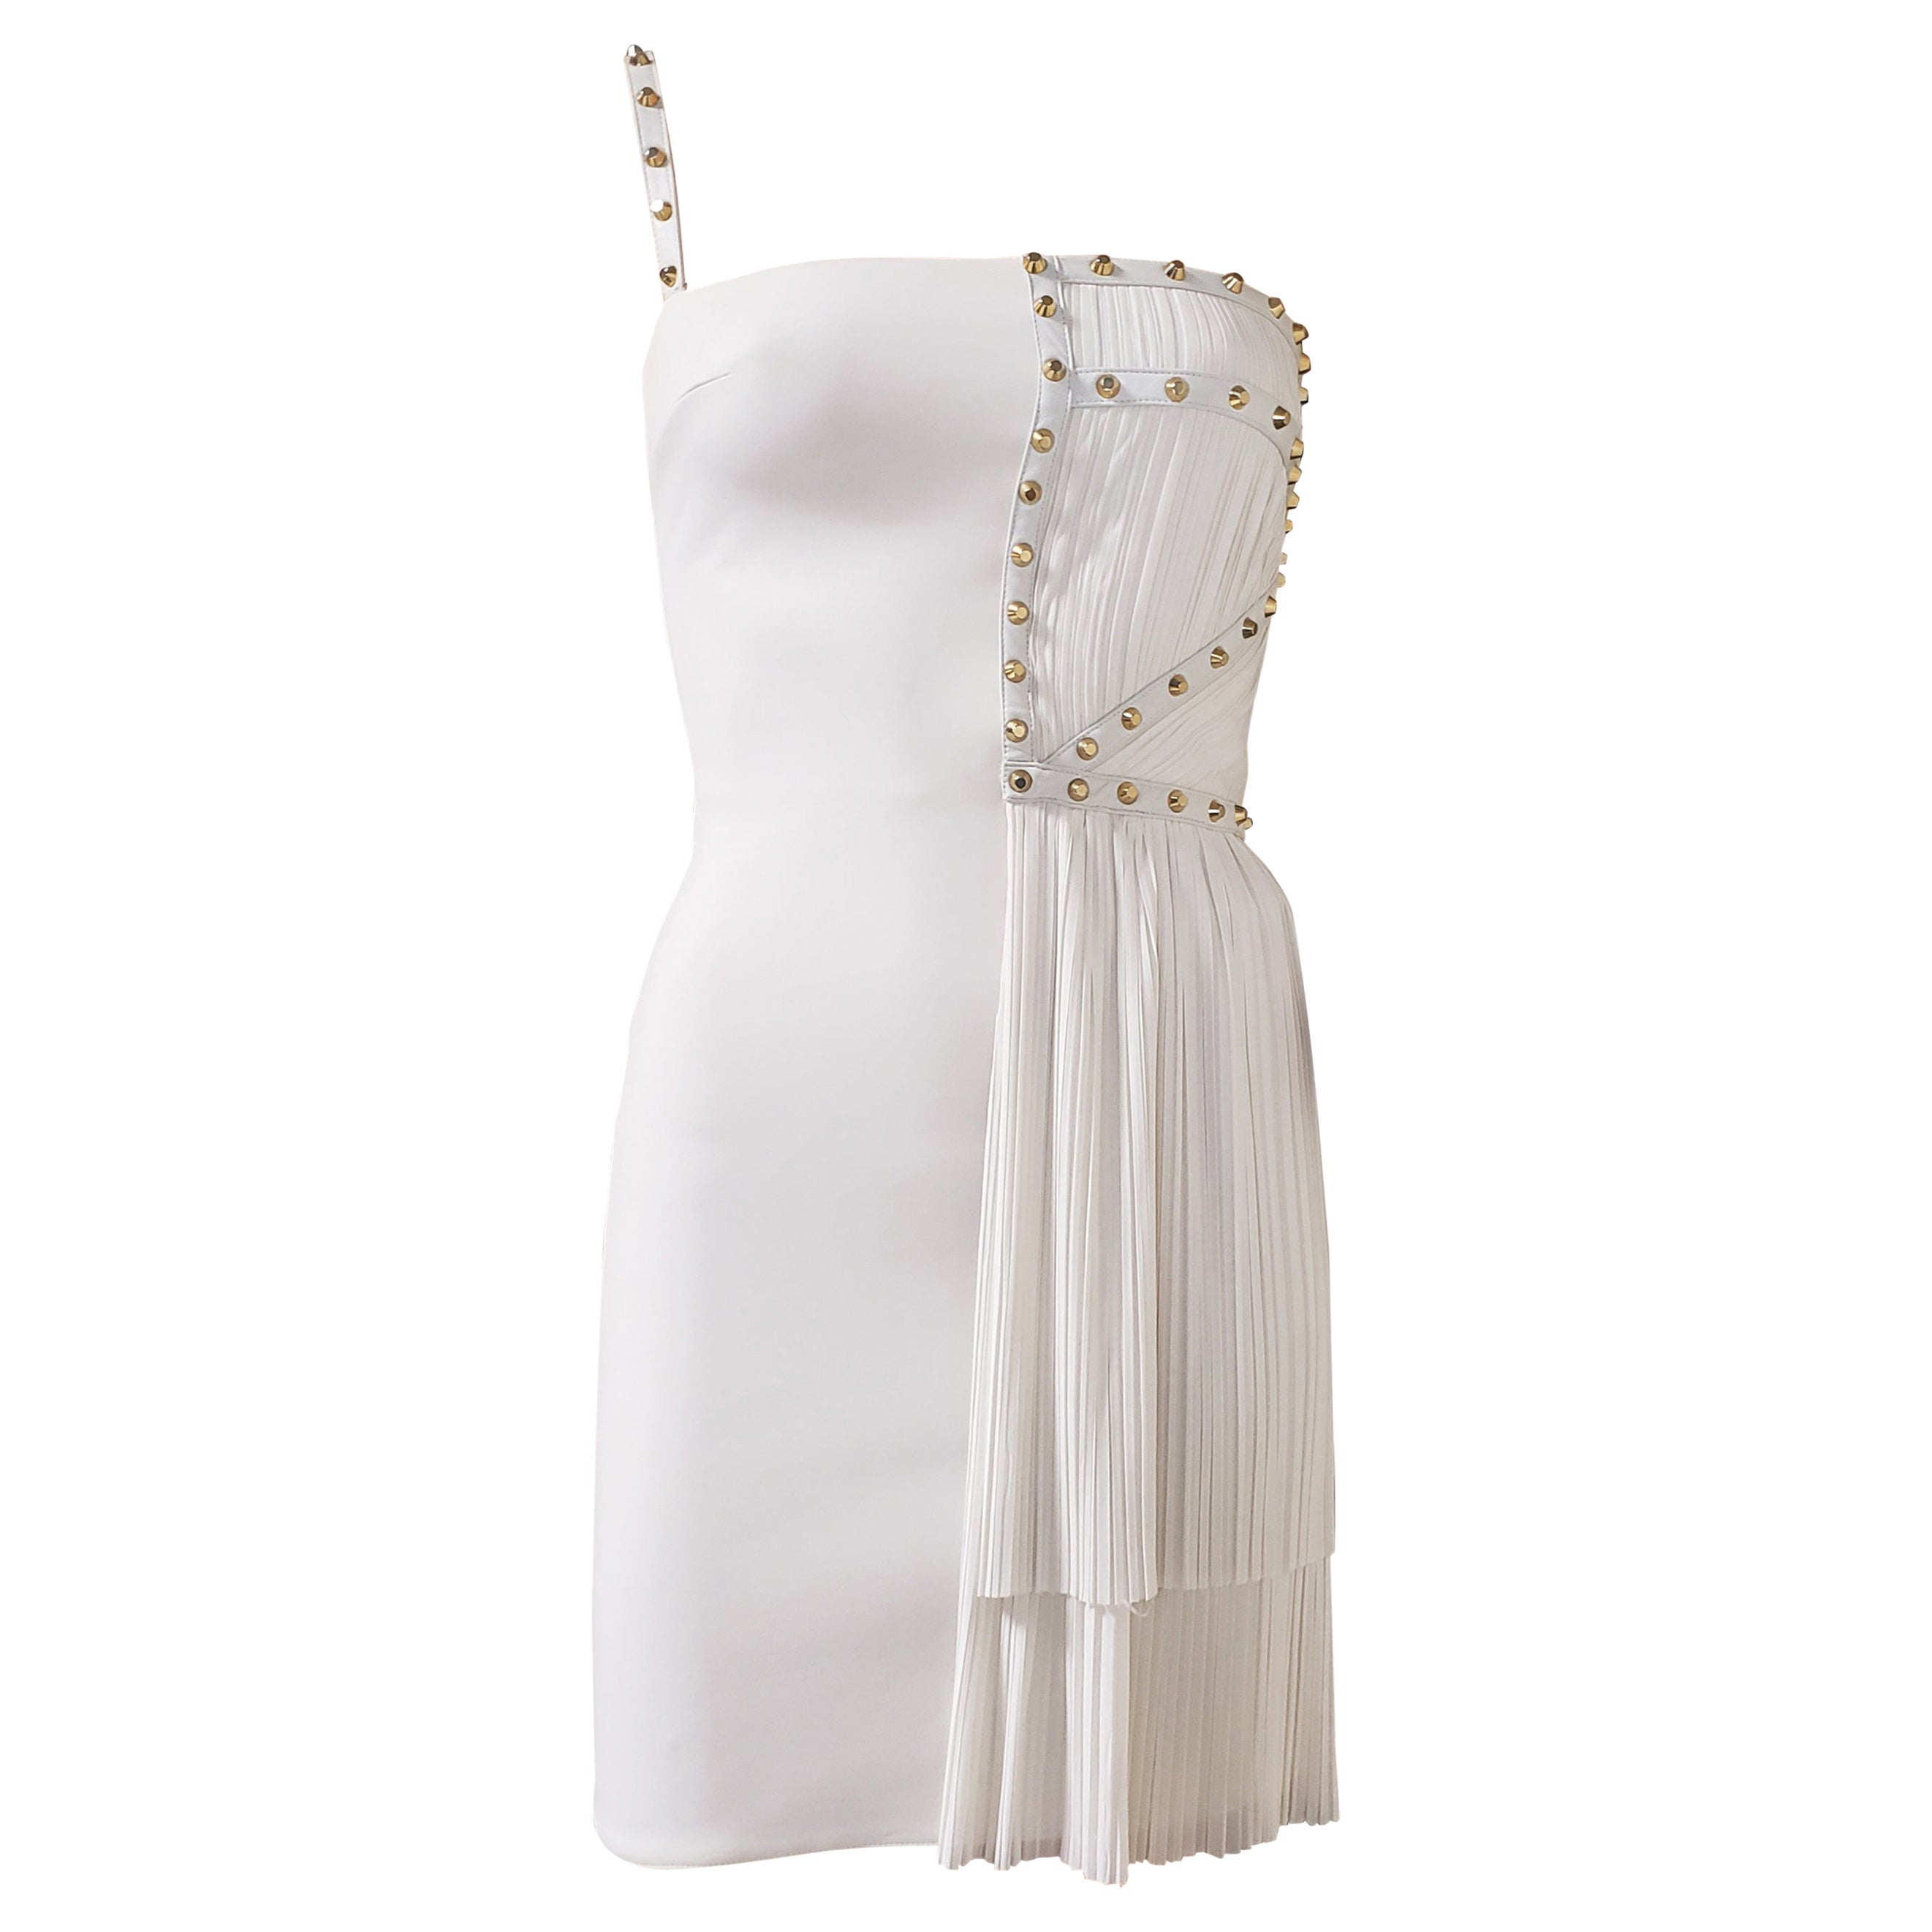 S/S 2012 look # 35 NEW VERSACE ONE SHOULDER WHITE STUDDED DRESS 38 - 2